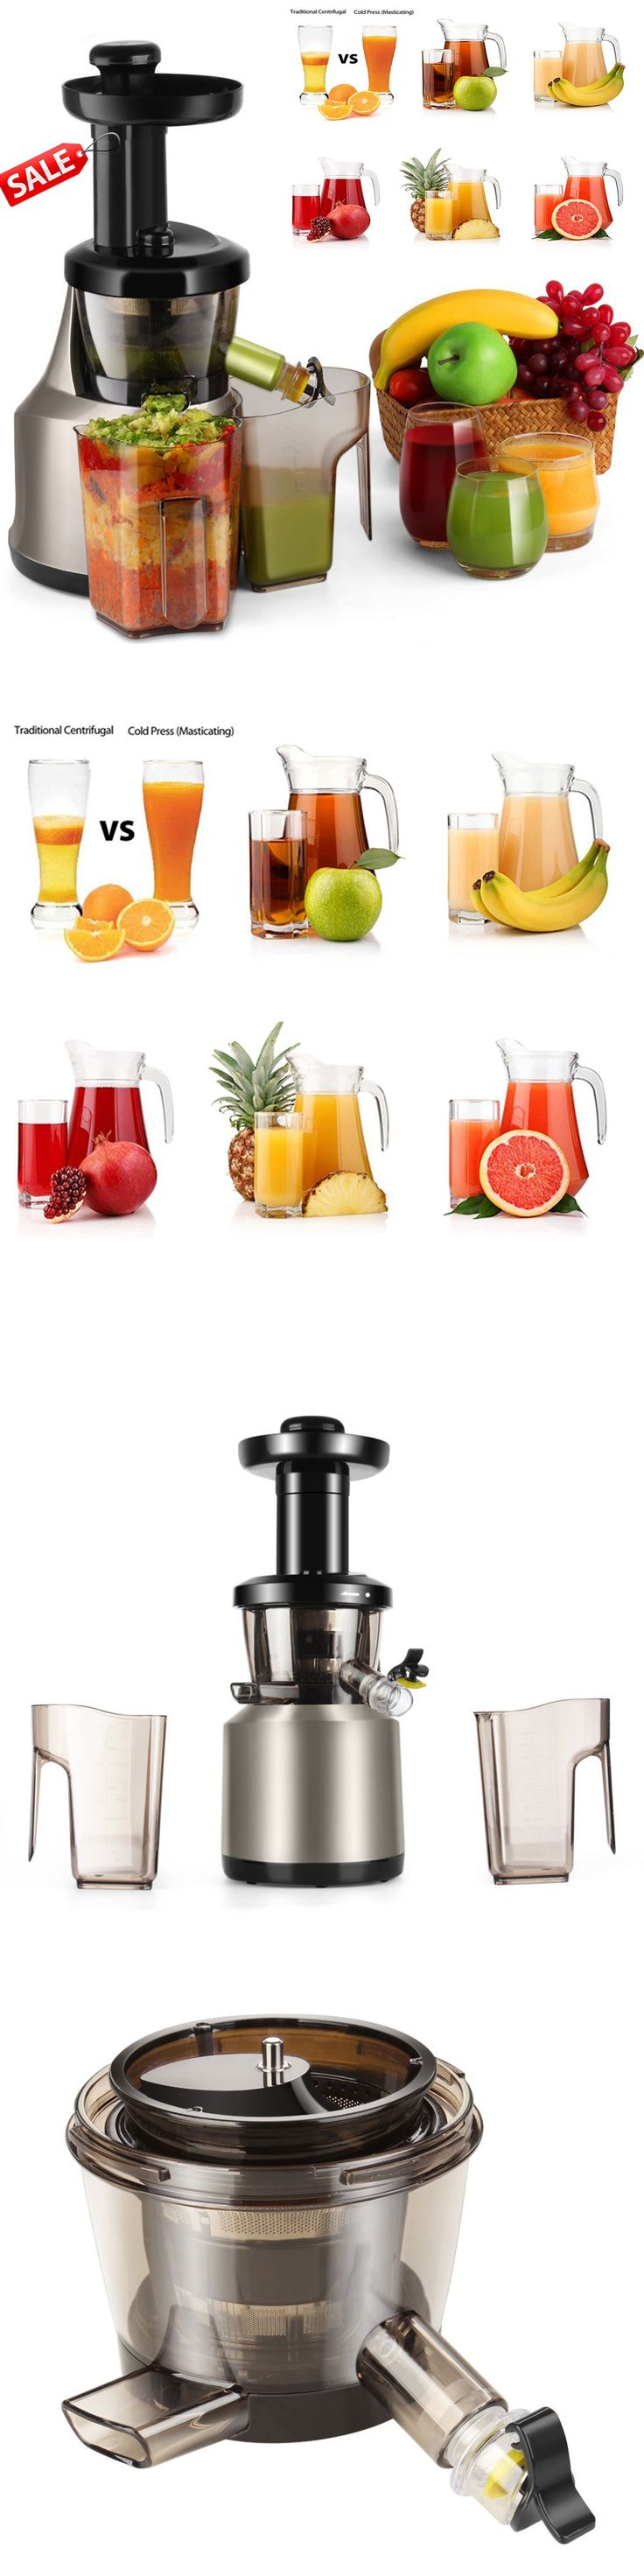 5l accents range only electricals co uk small kitchen appliances - Small Kitchen Appliances Cold Press Juicer Machine Masticating Electric Low Juice Extractor Maker Big Cup